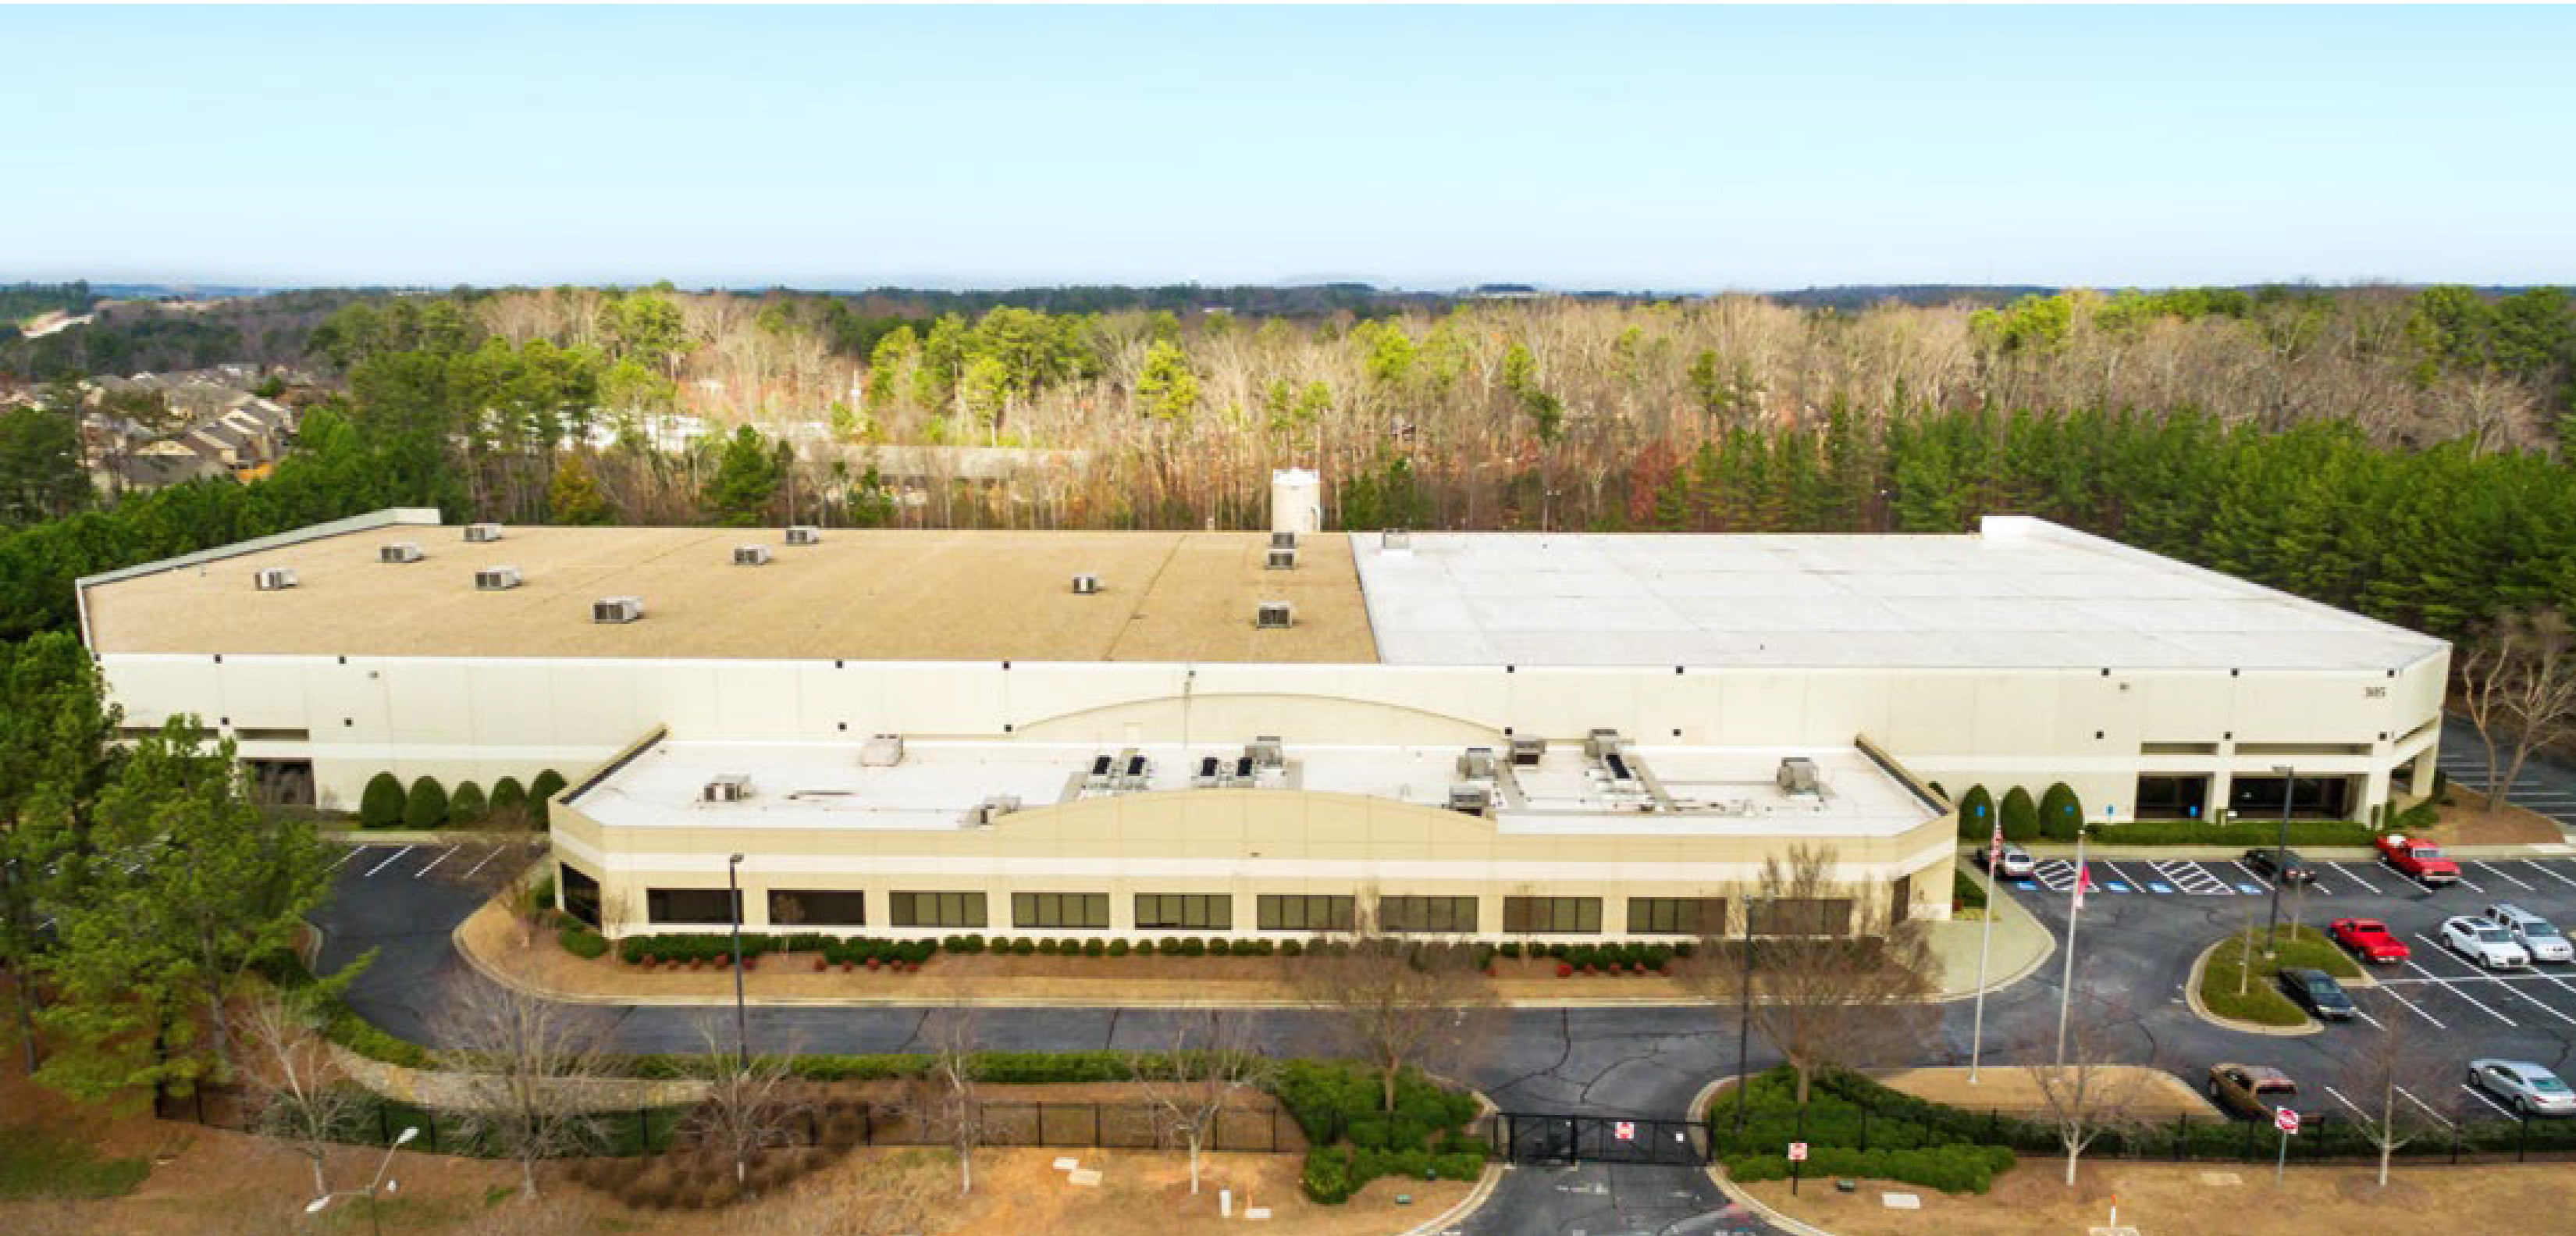 Serverfarm Expands With Acquisition of Atlanta Data Center